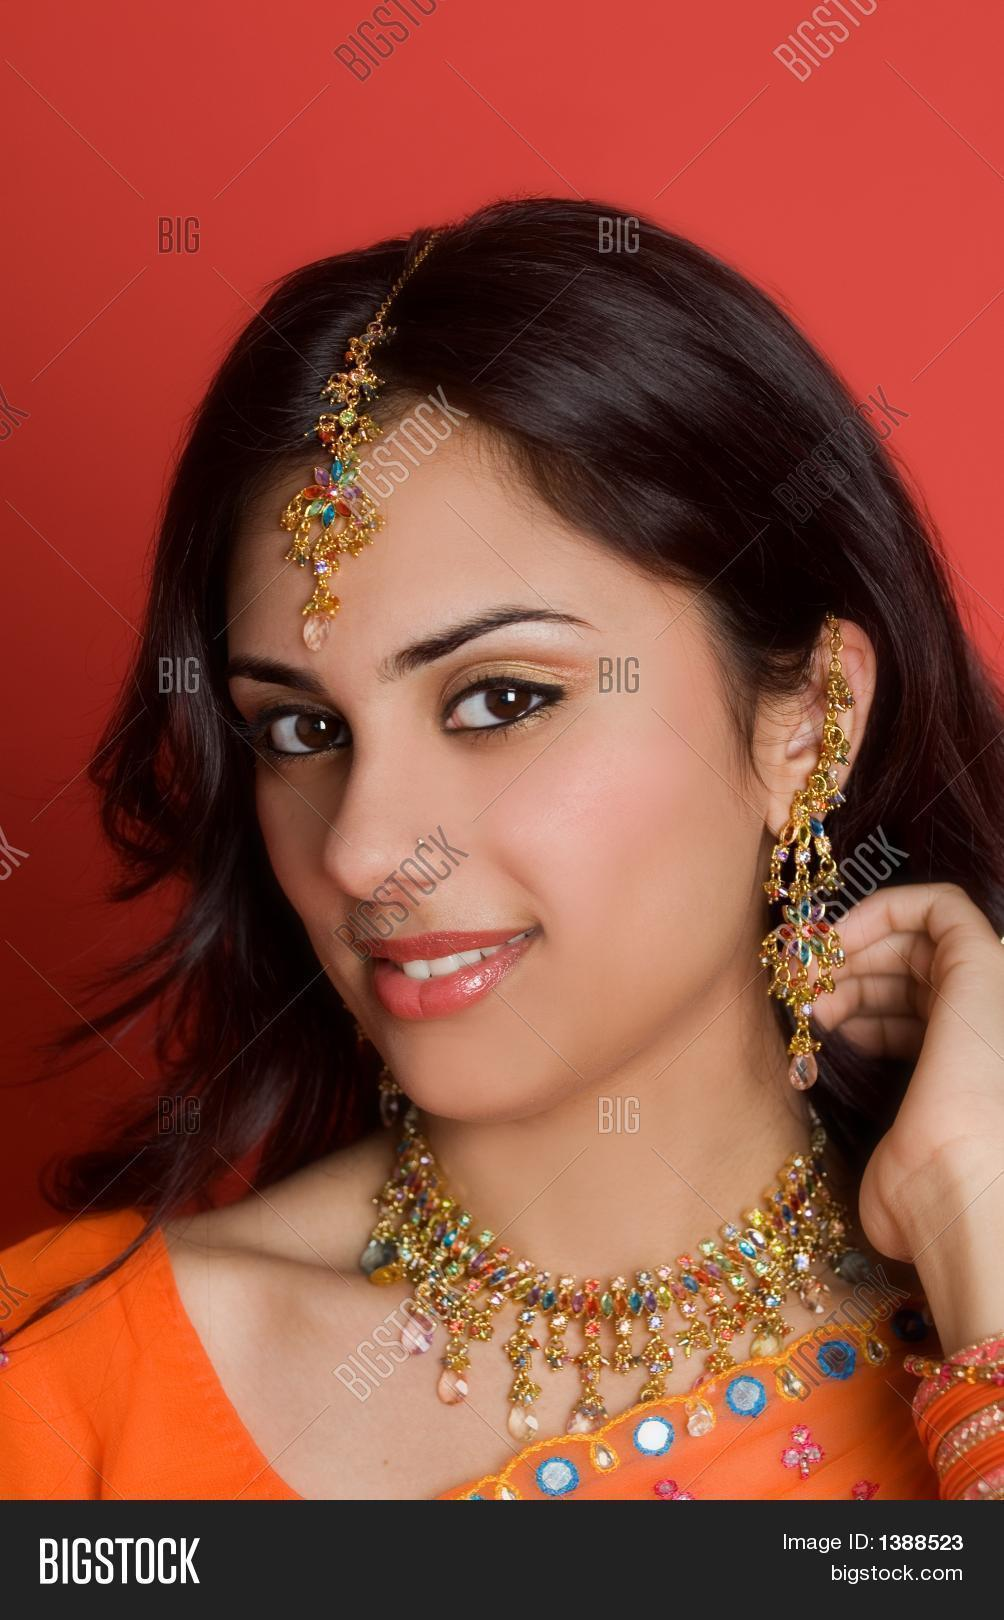 hindu single women in byromville Hindu single women in byromville indian women | indian singles | indian girls |  indian  indian ladies, single ladies in india free indian dating and personals site .